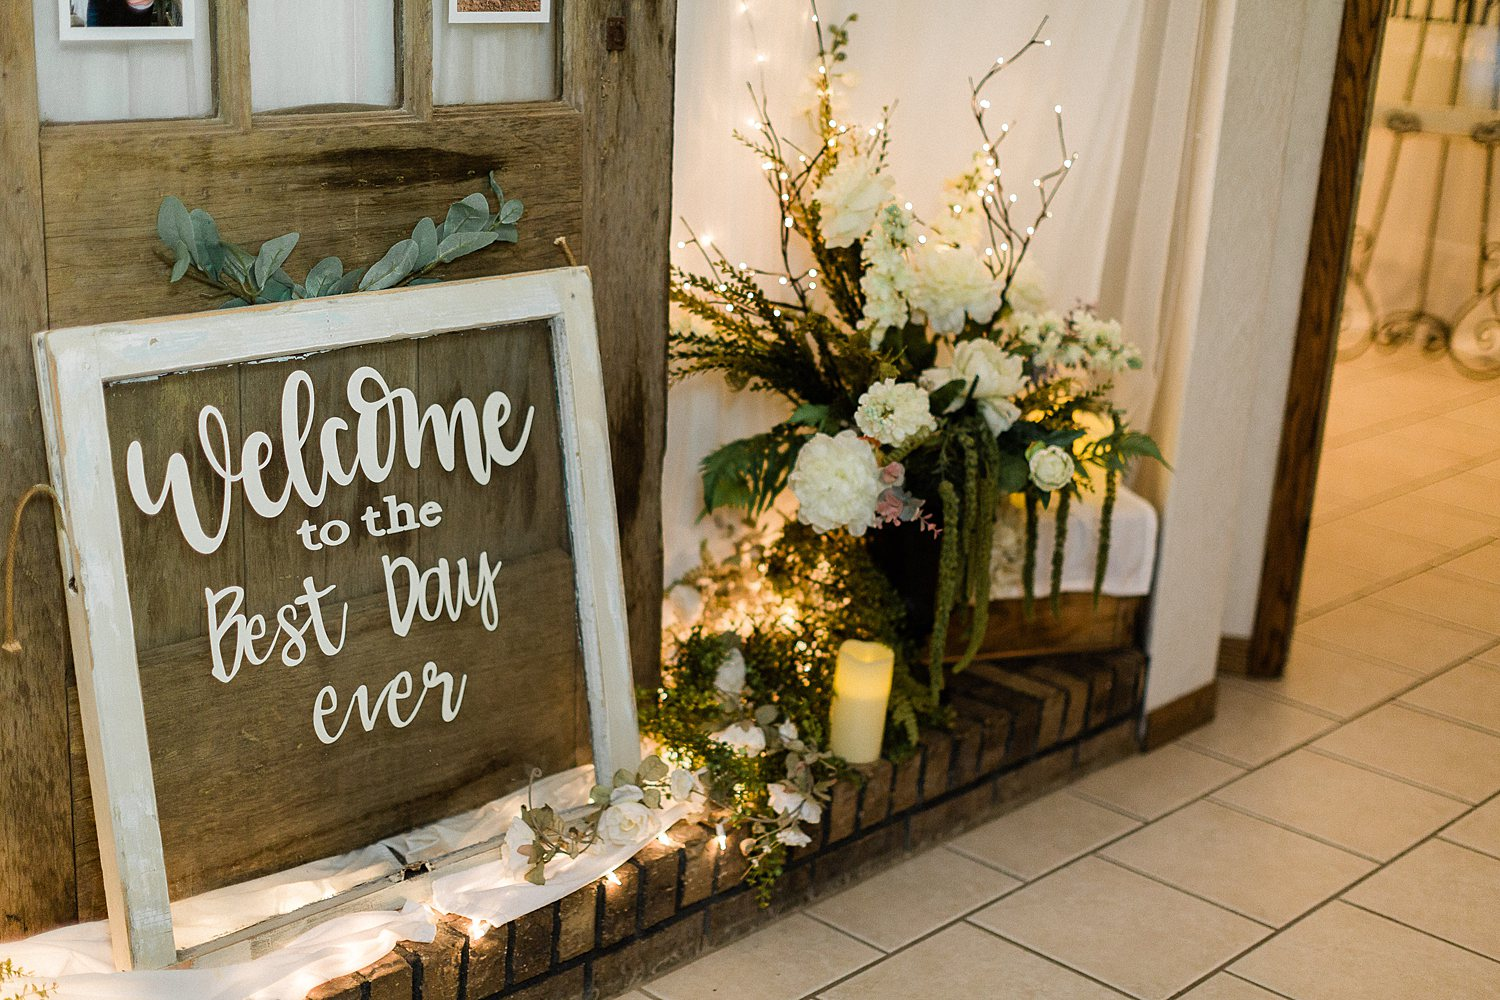 North_Central_Wisconsin_Event_Wedding_Venues_Fall_Weddings_The_Bailiwick_Venue_James-Stokes-Photography087.jpg